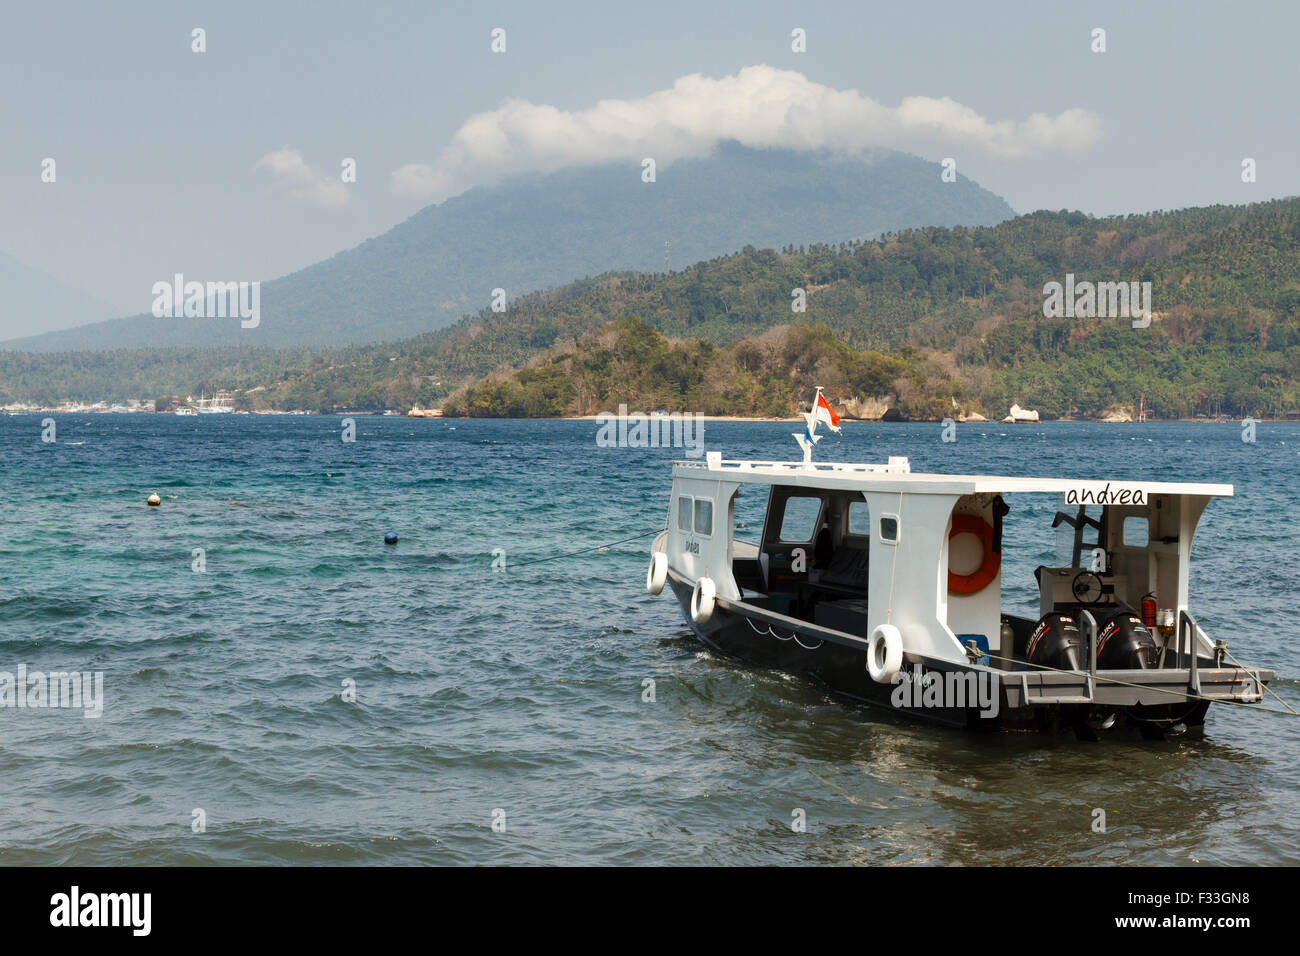 Dive boat in the water at Lembeh Strait, North Sulawesi, Indonesia - Stock Image